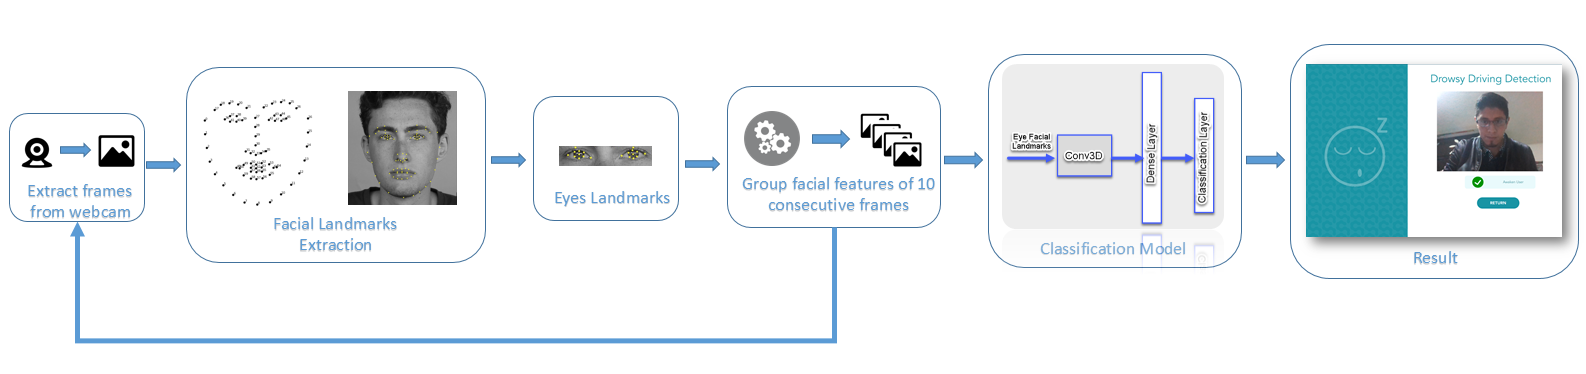 Drowsy Detection Using Facial Landmarks Extraction and Deep Neural